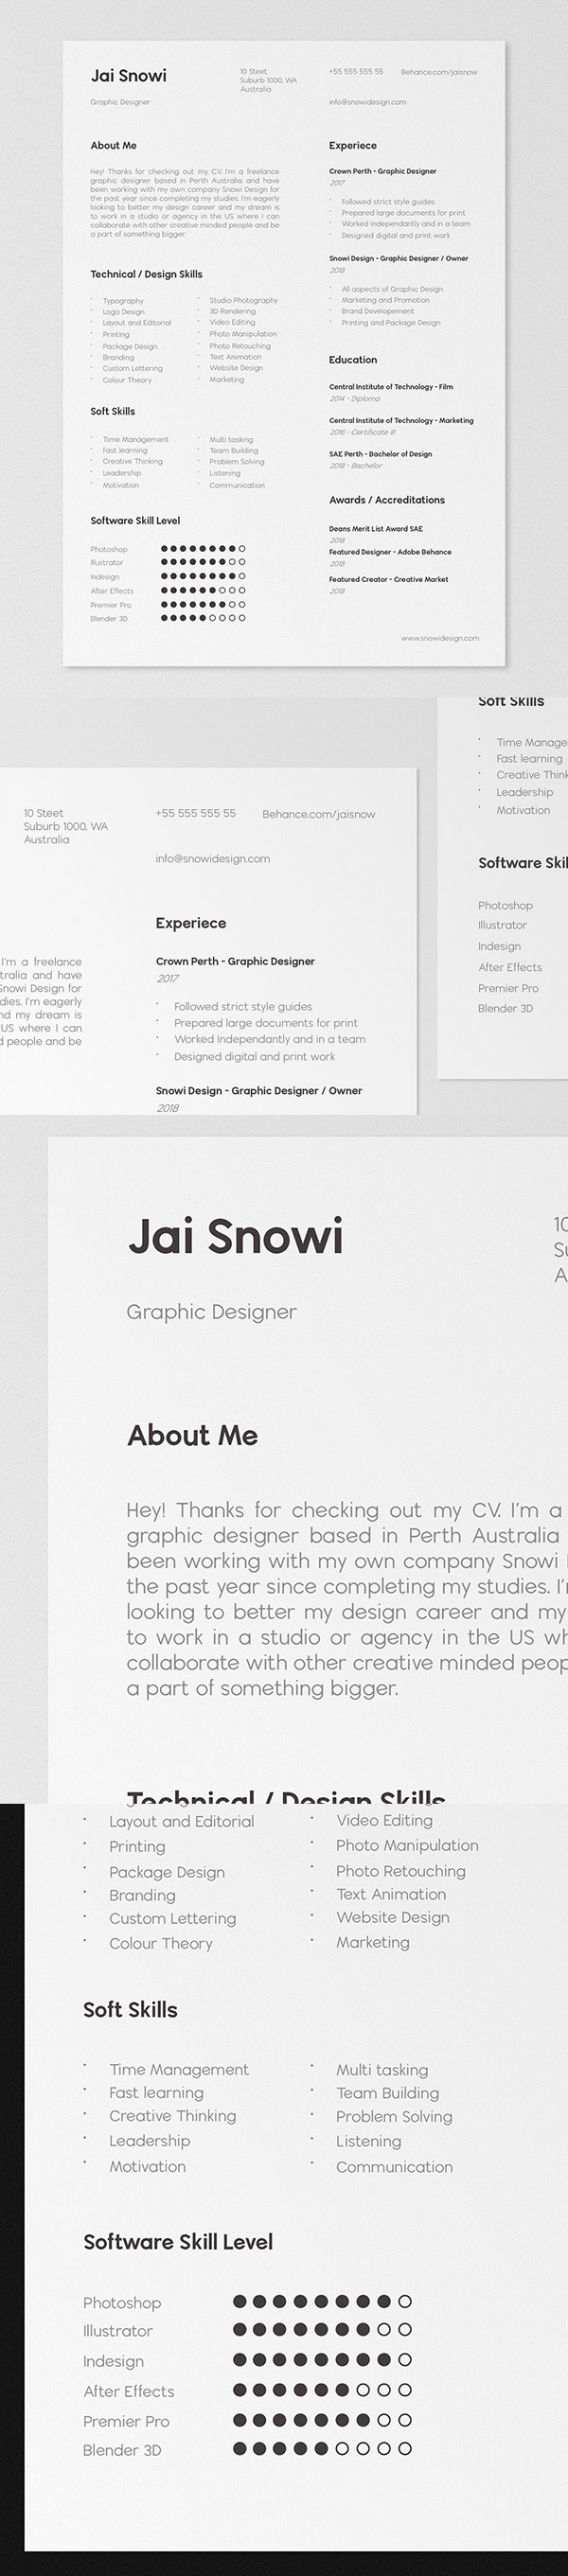 FREE - CV / Portfolio Template and Mockup Download